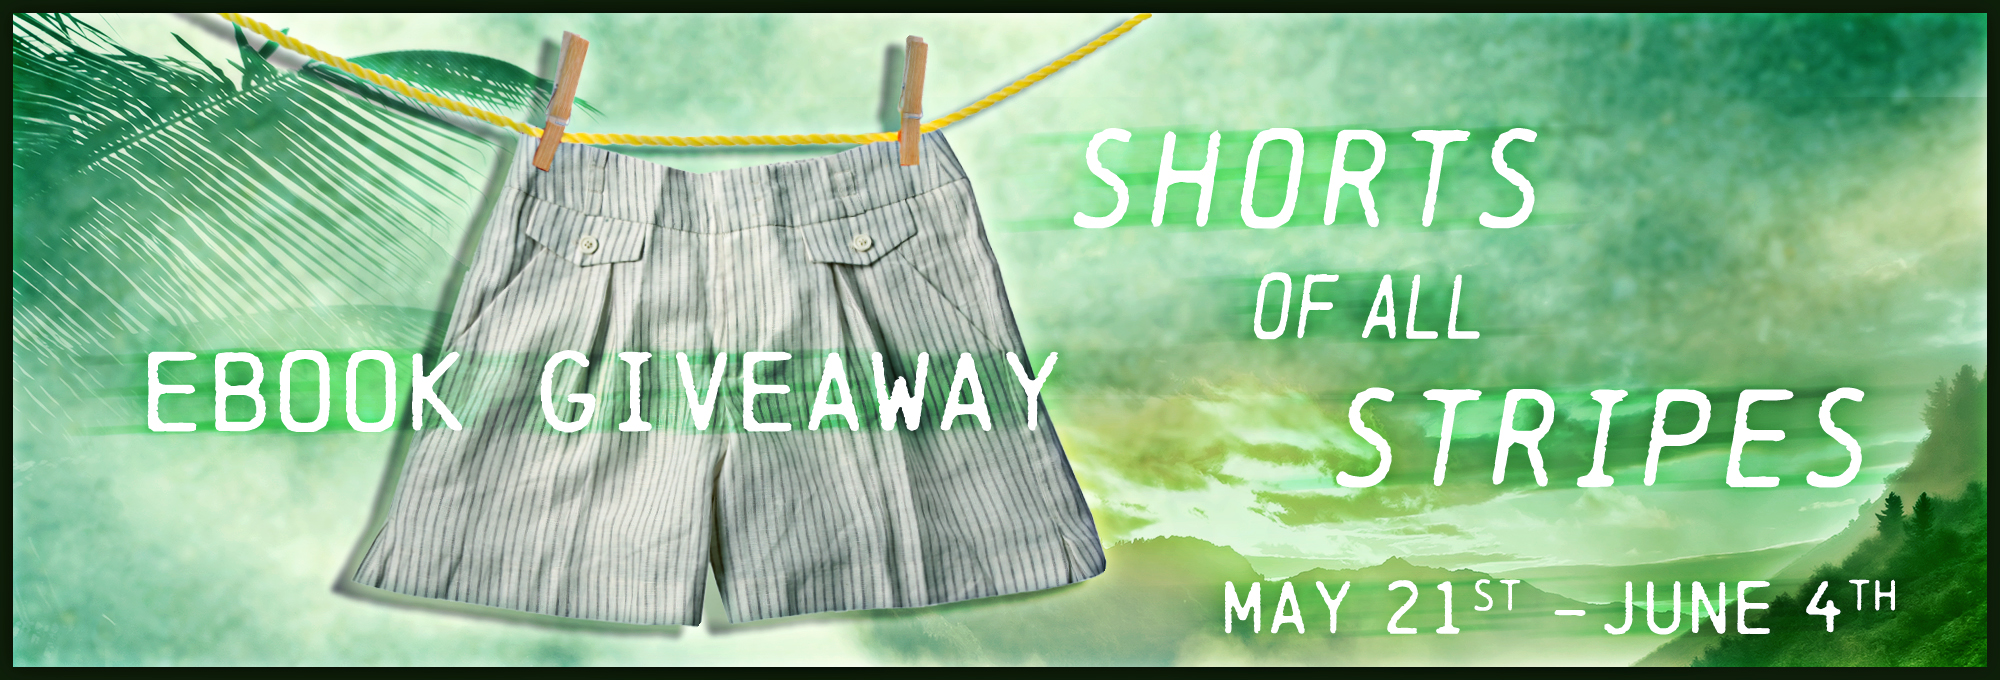 Shorts of All Stripes - Ebook Giveaway